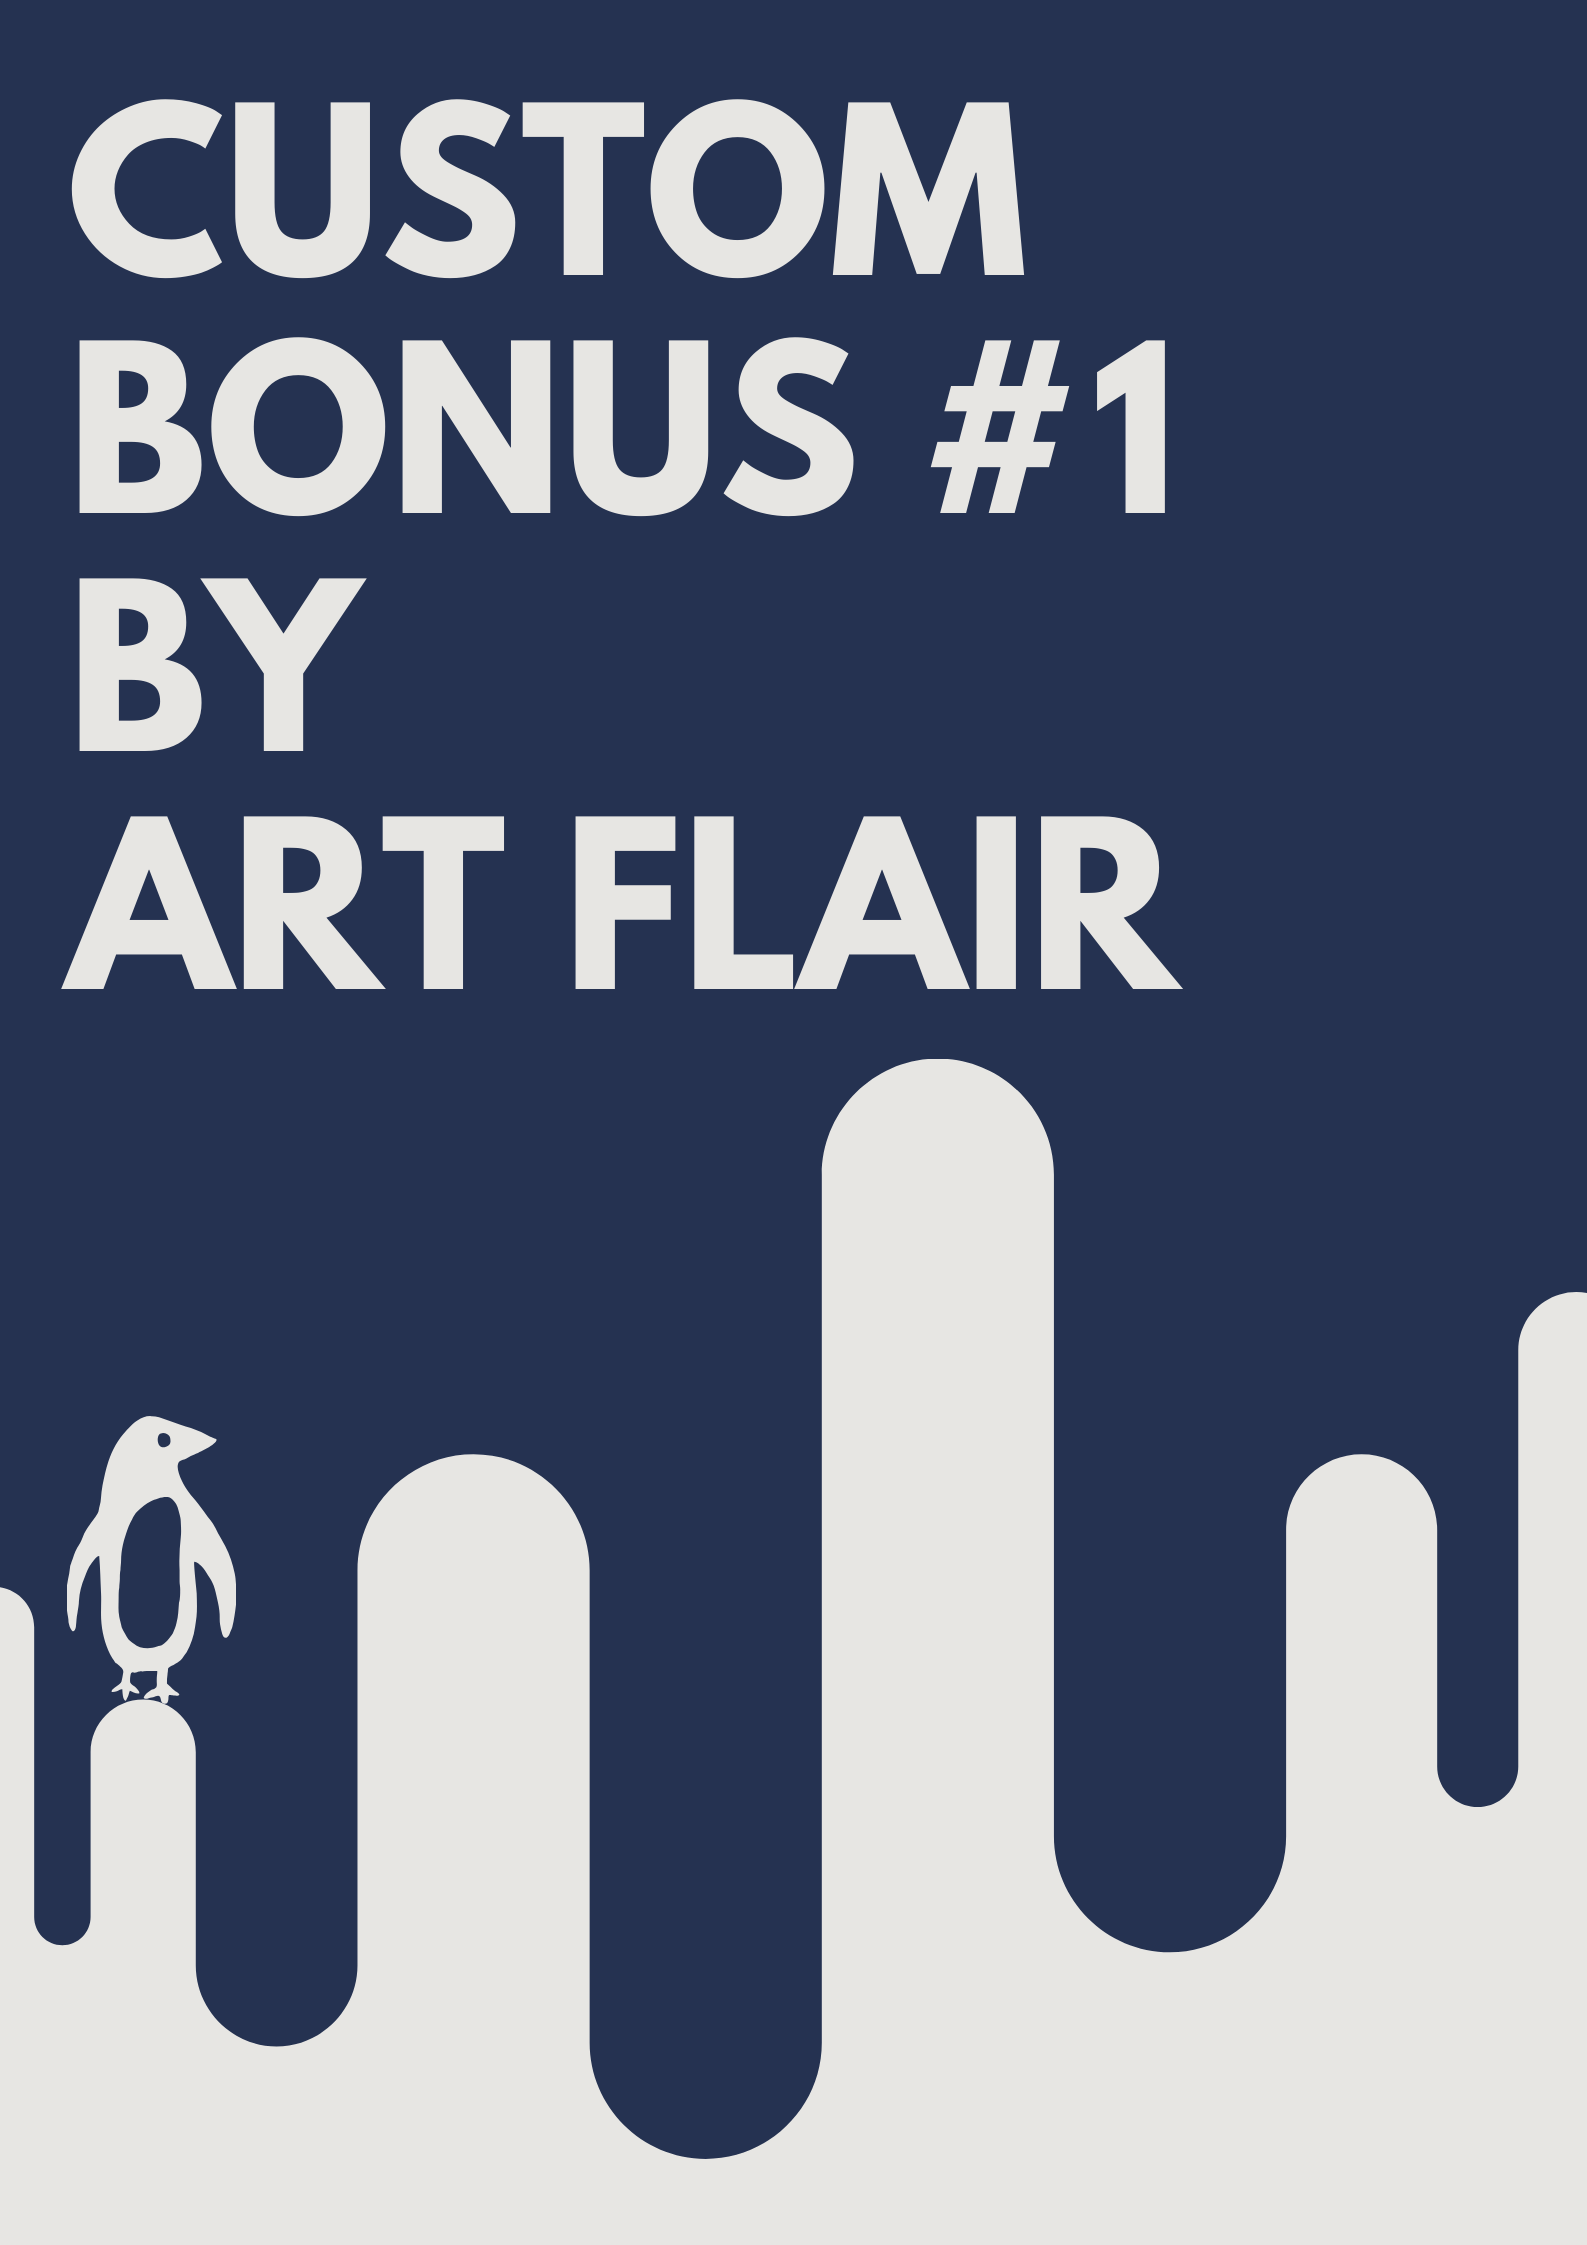 Custom Bonuses by Art Flair